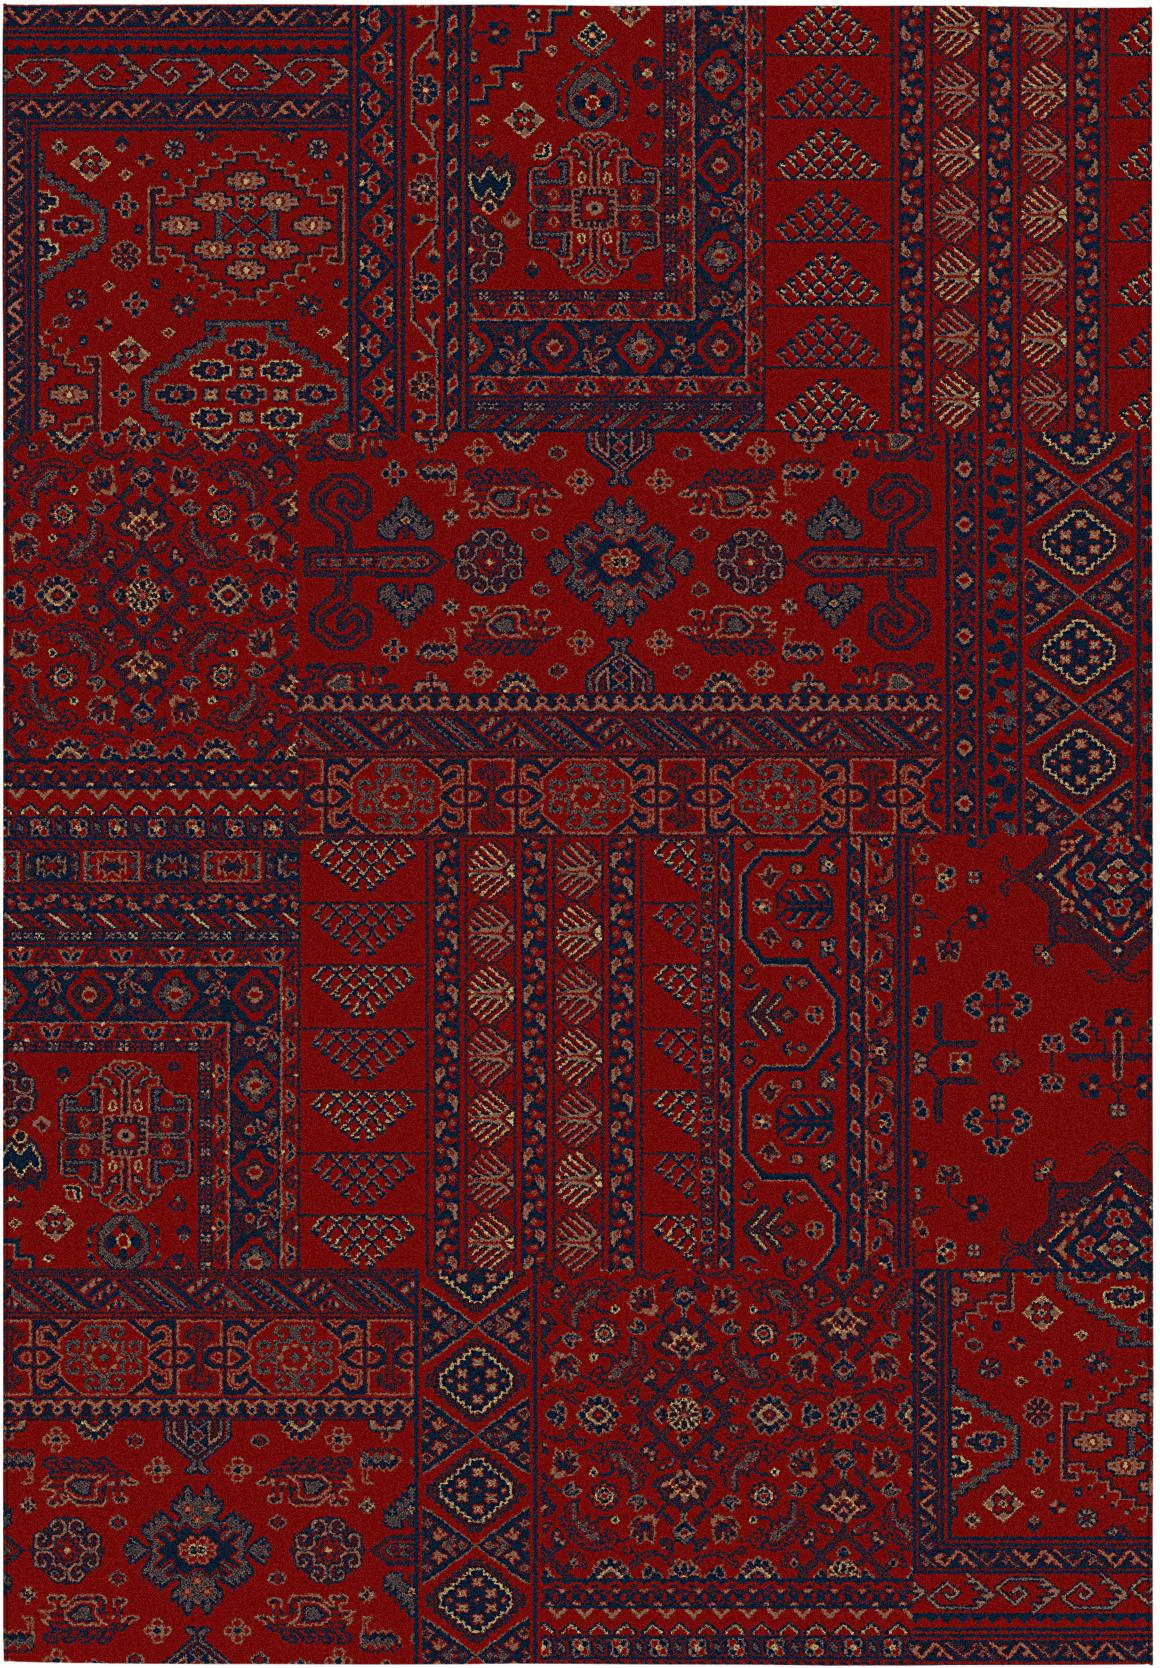 Alfombra Kirman 160x230 cm burdeo TOP